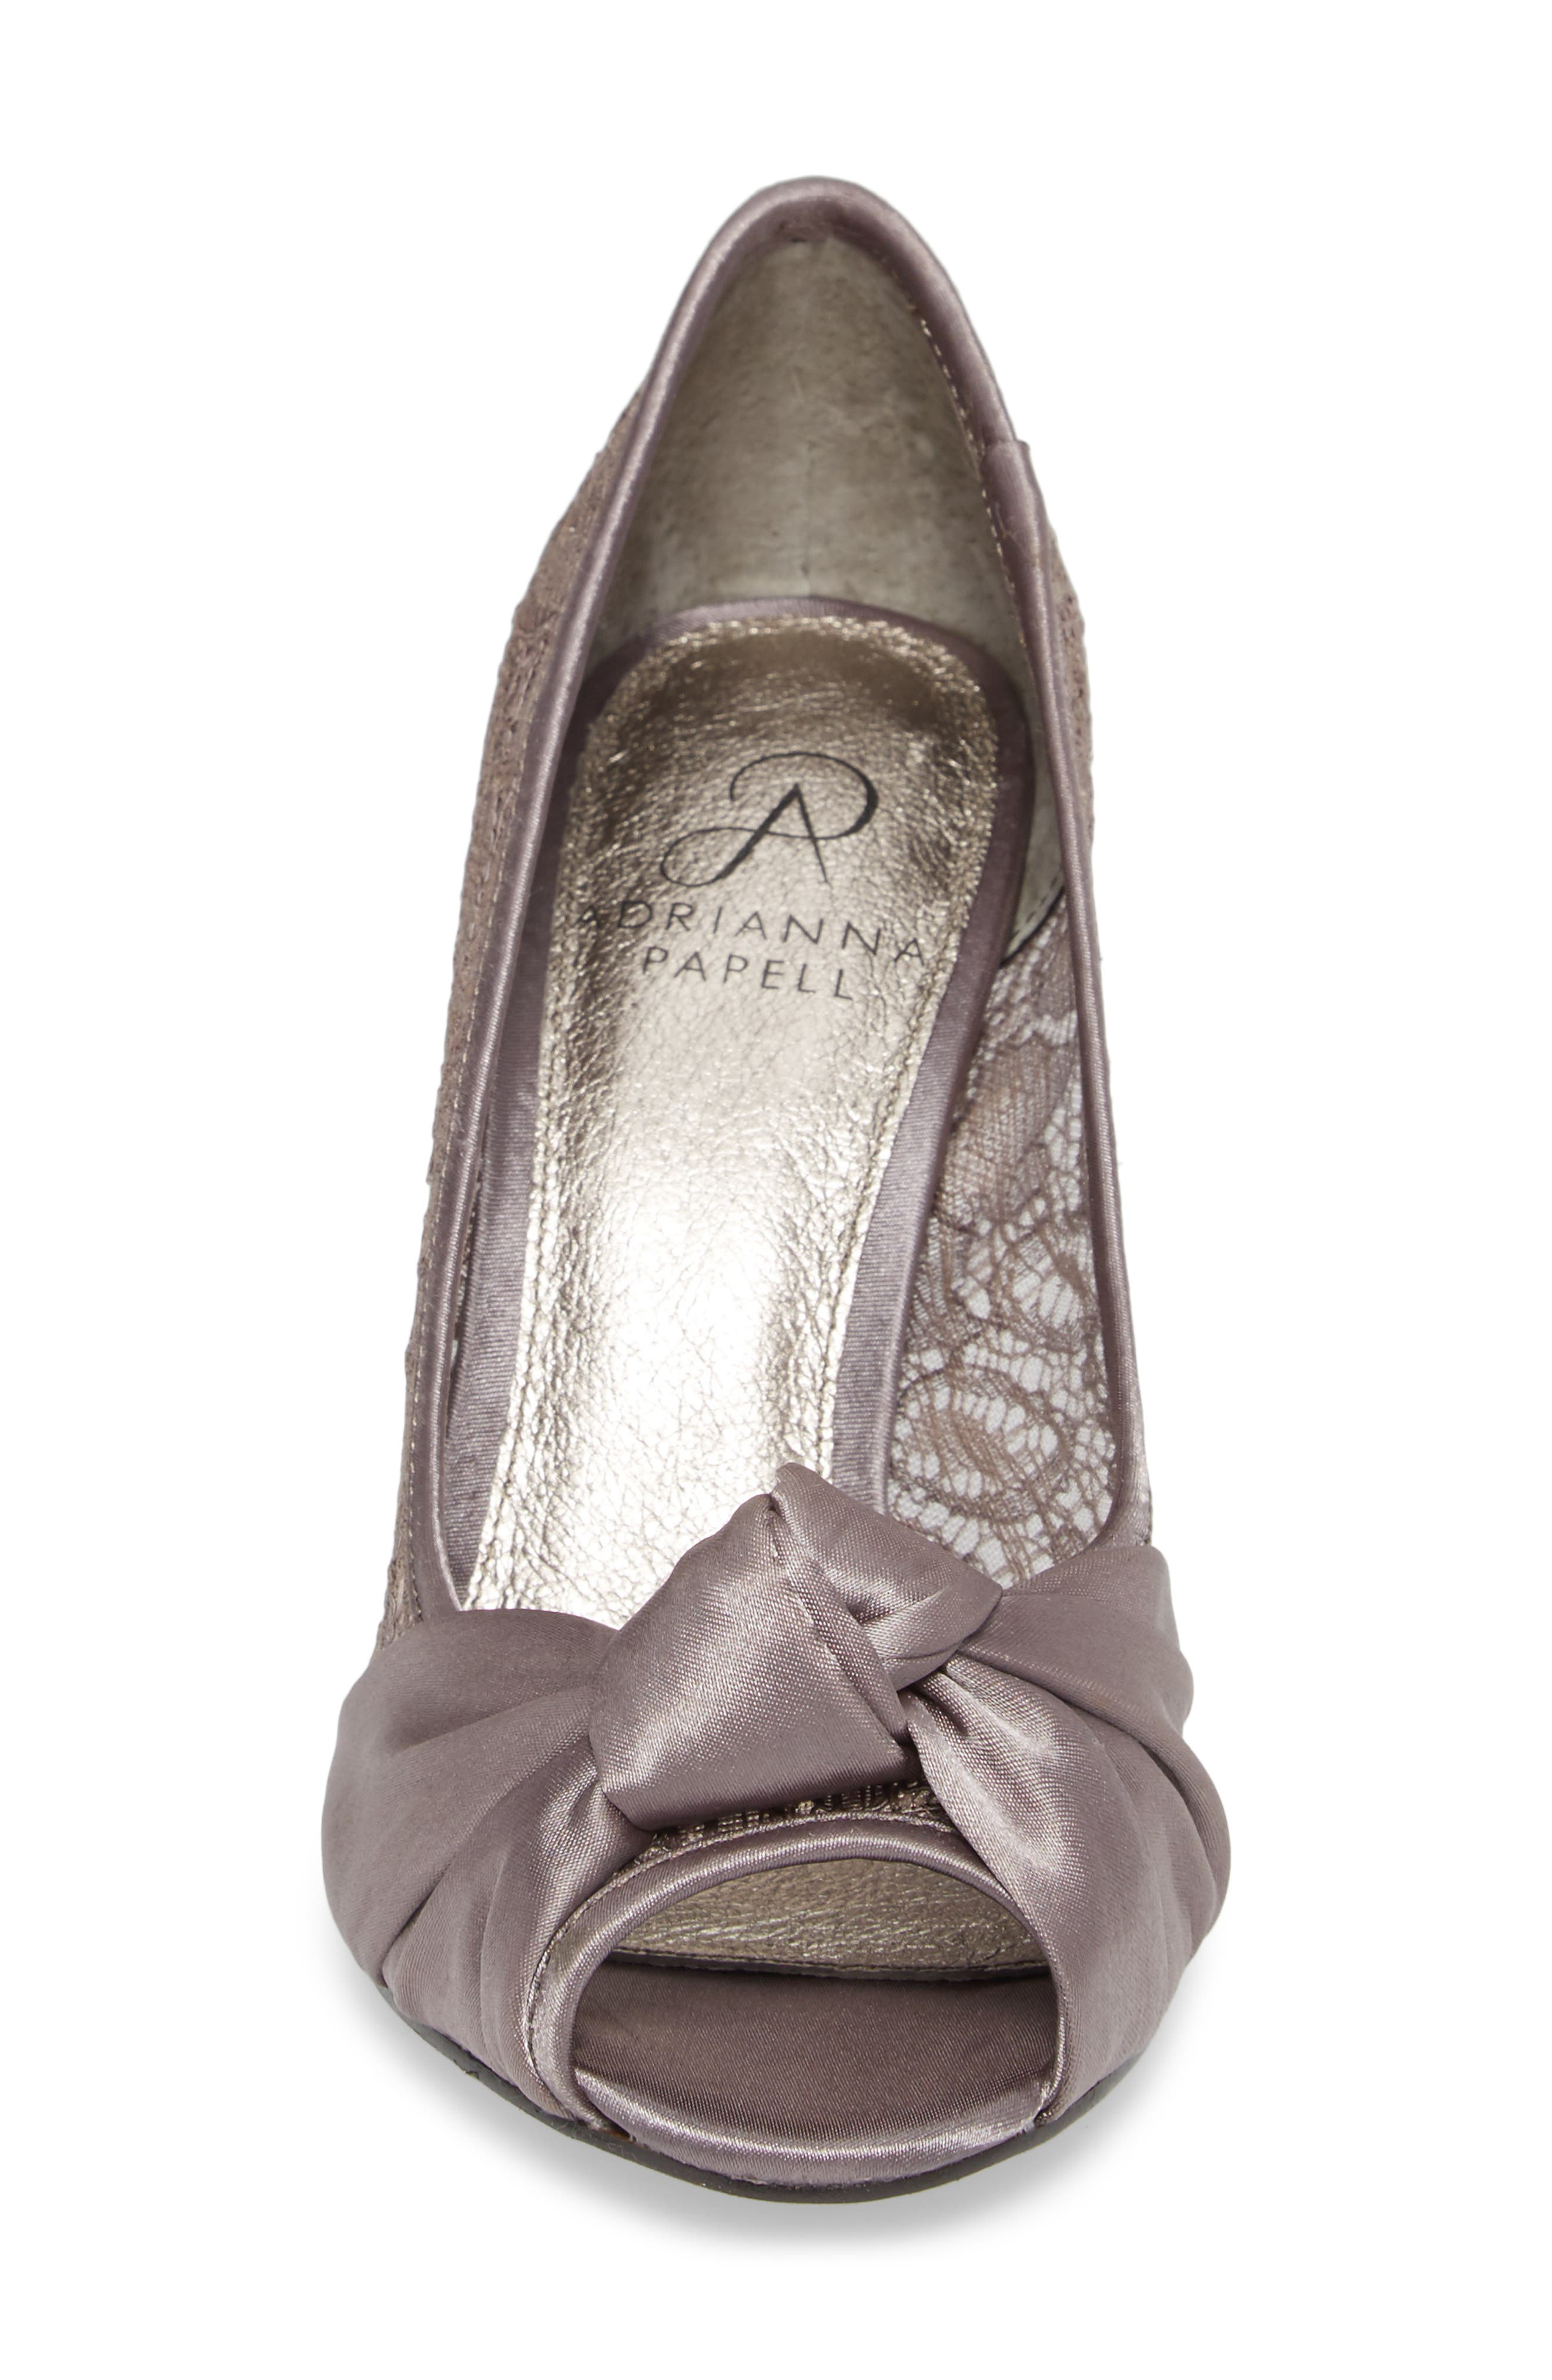 Francesca Knotted Peep Toe Pump,                             Alternate thumbnail 4, color,                             Steel Satin